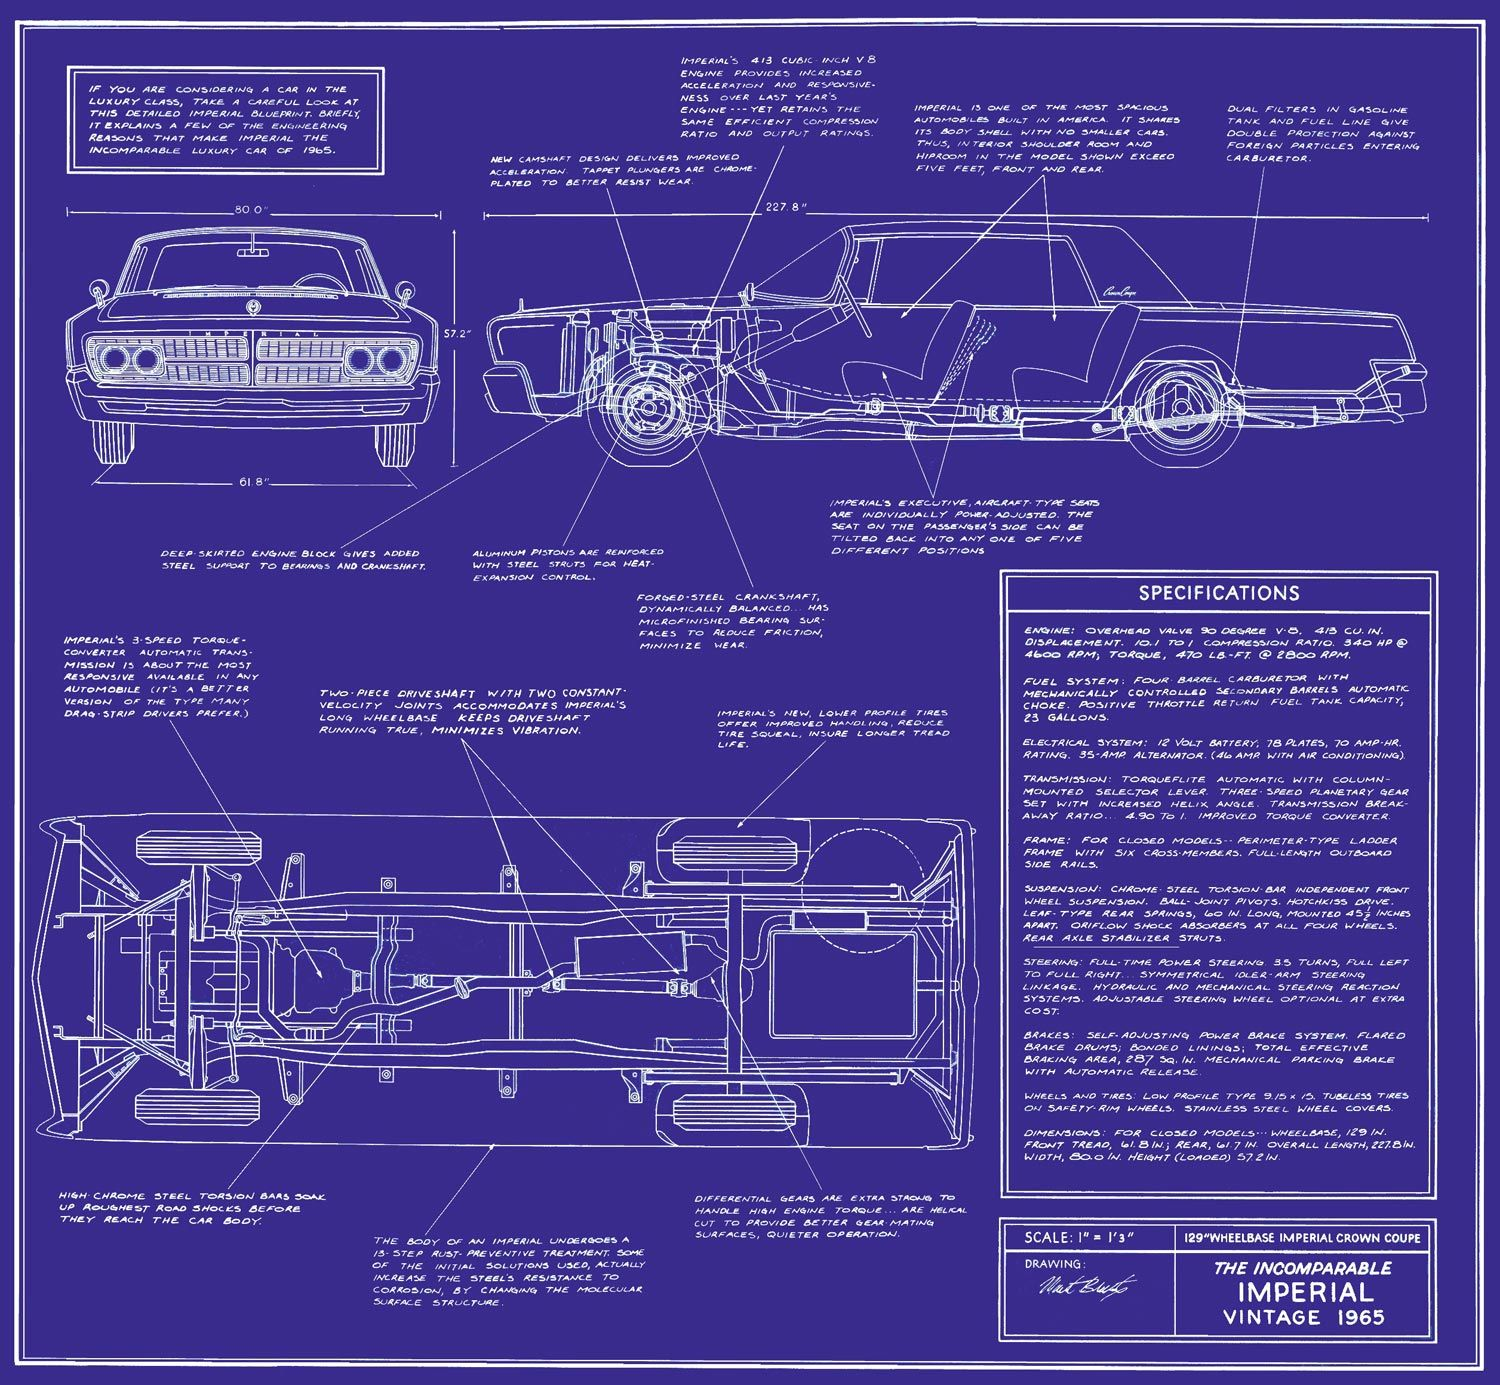 1965 (Chrysler) Imperial Blueprint | Imperial by Chrysler ...